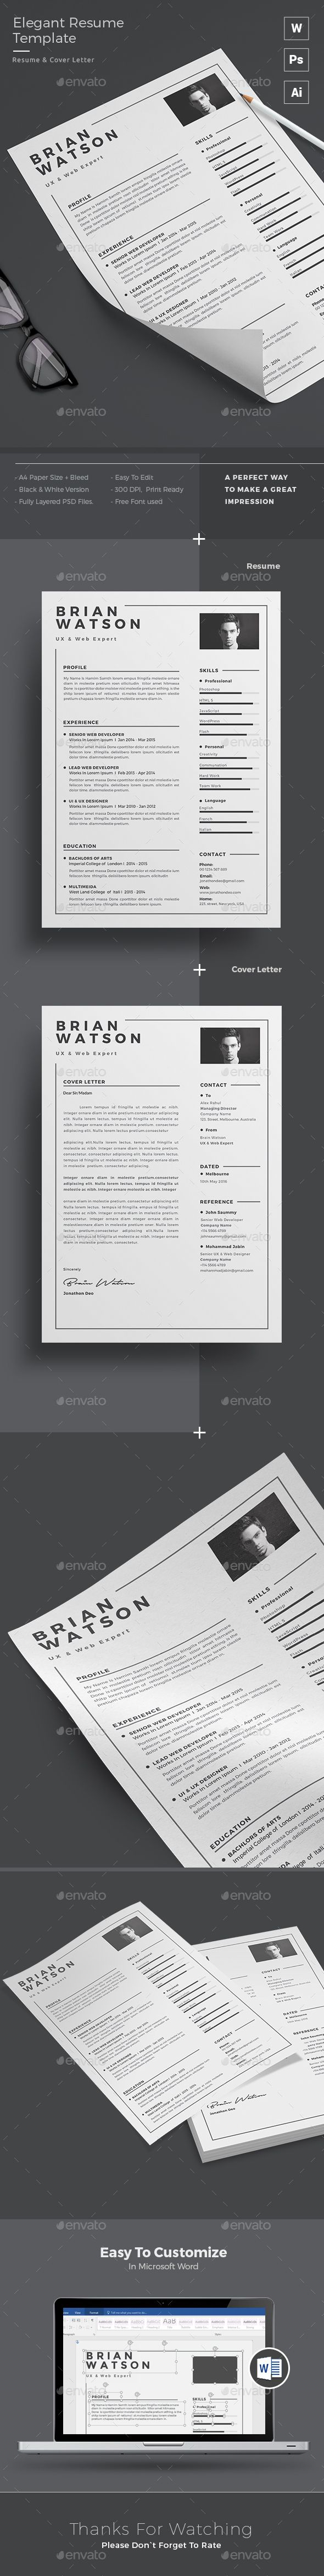 Resume Template PSD, AI. Download here: http://graphicriver.net/item/resume/15841105?ref=ksioks